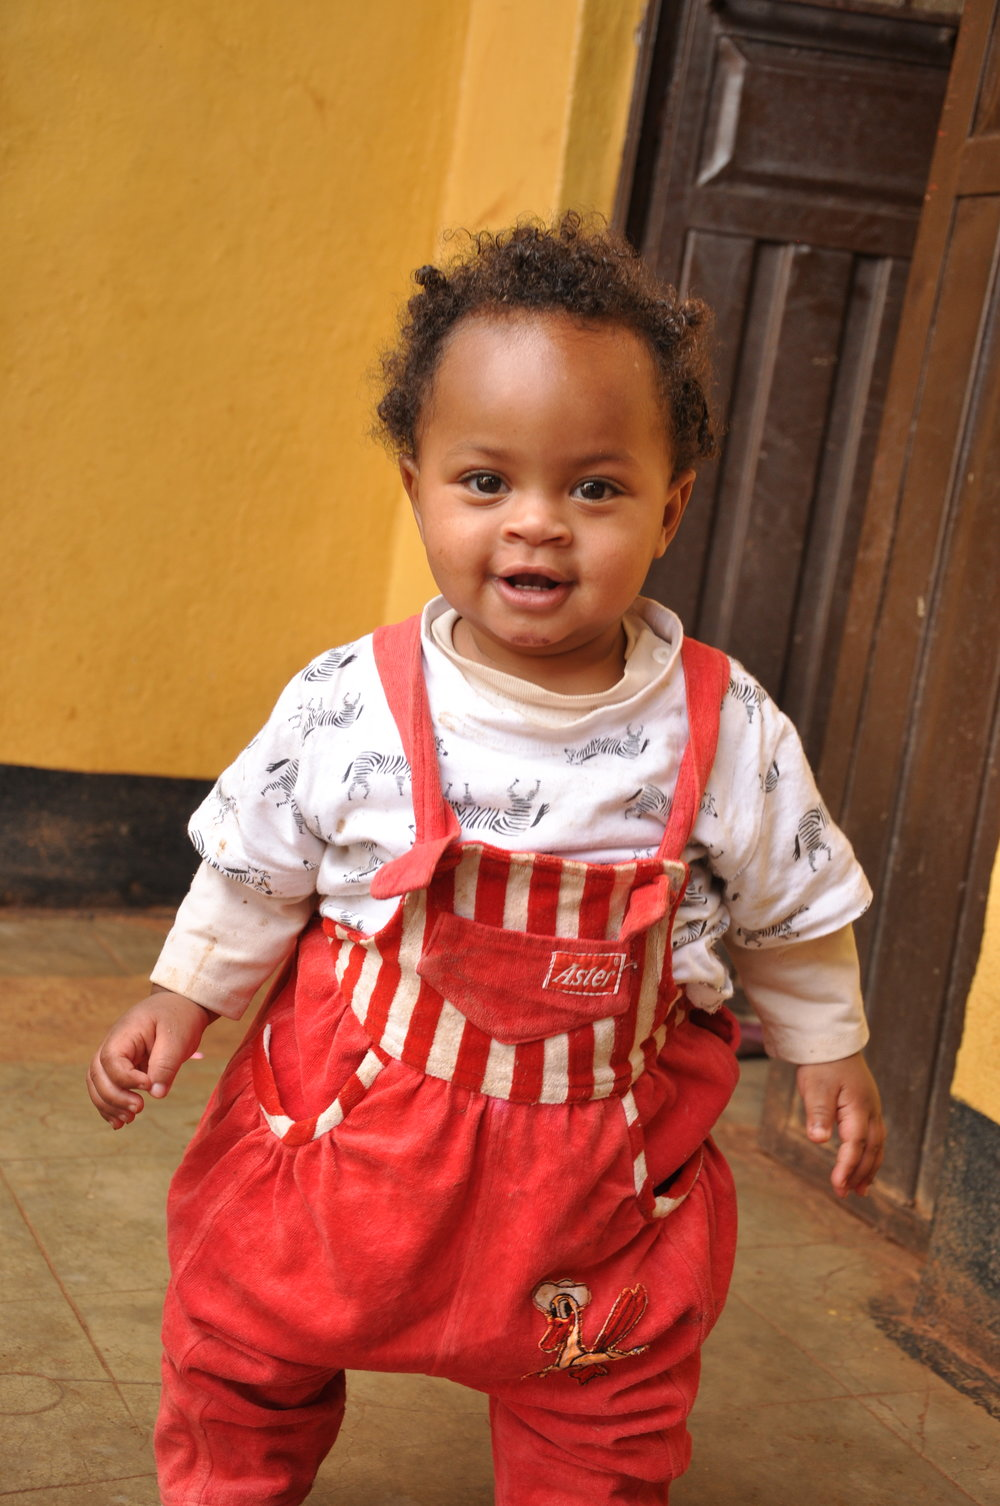 Edigatua  Edigatua came to us as a tiny, fragile newborn. She is a wide eyed, smiley, chubby baby girl now, and very curious about everything around her. Edigatua is generously sponsored by Dick and Francie Carvin.